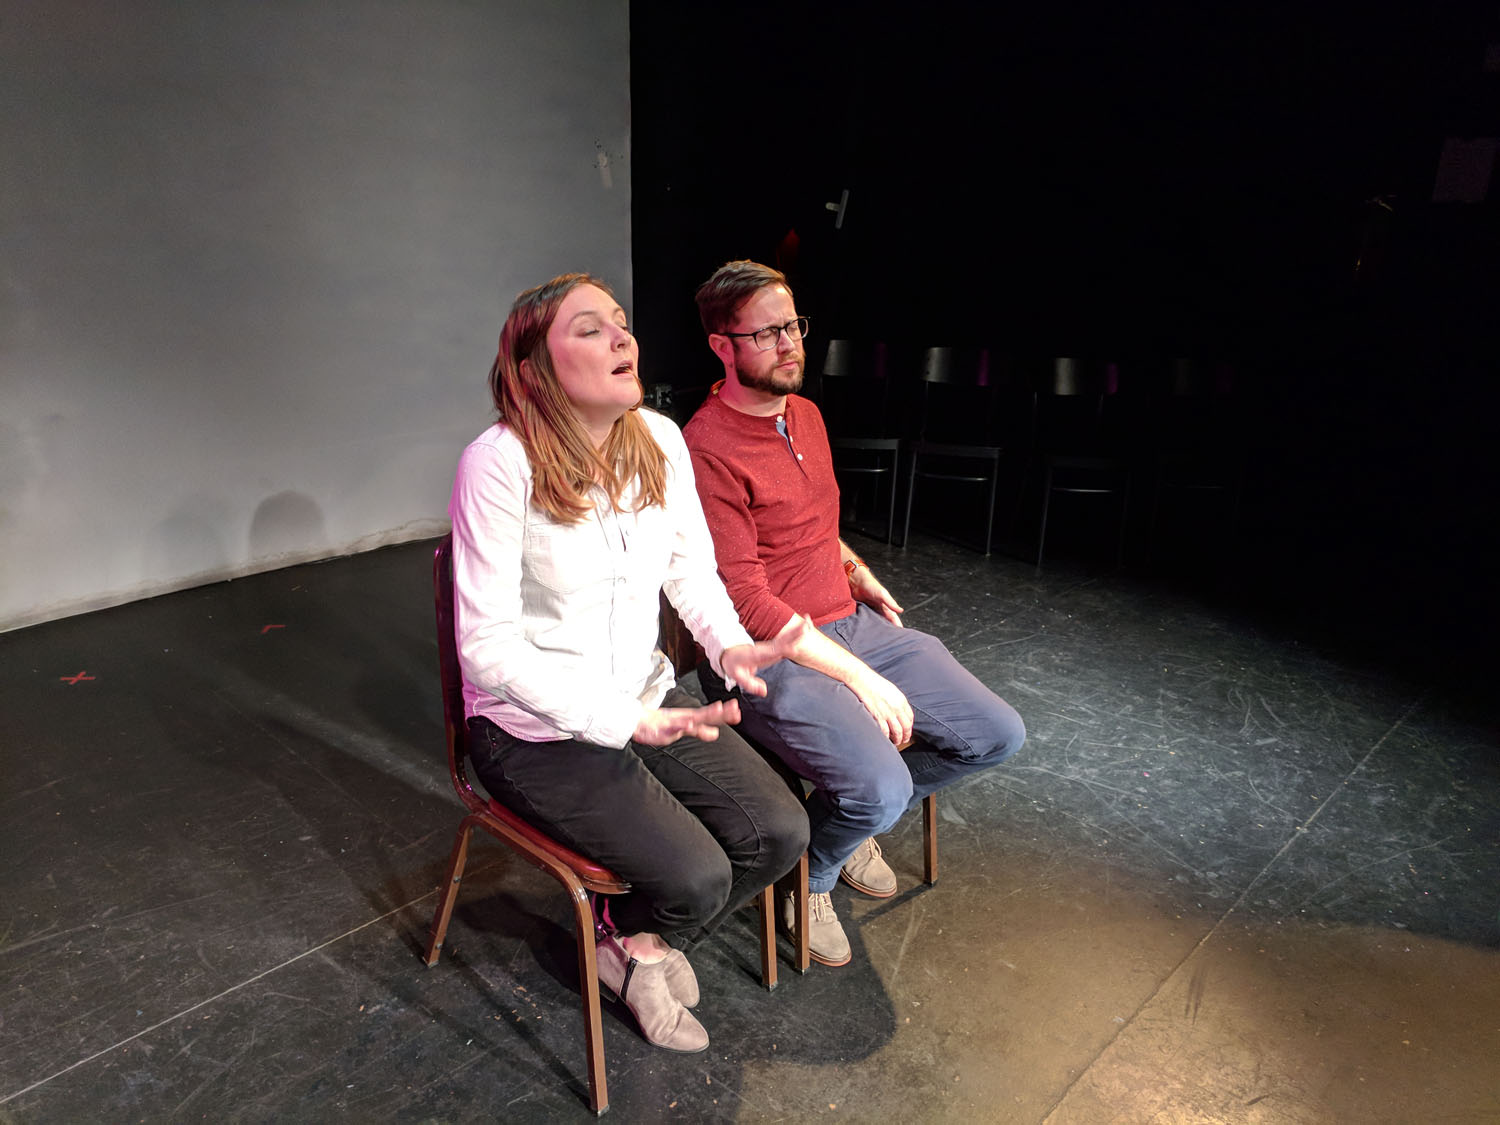 Jennifer Murray and Cole Stratton at PianoFight for SF Sketchfest